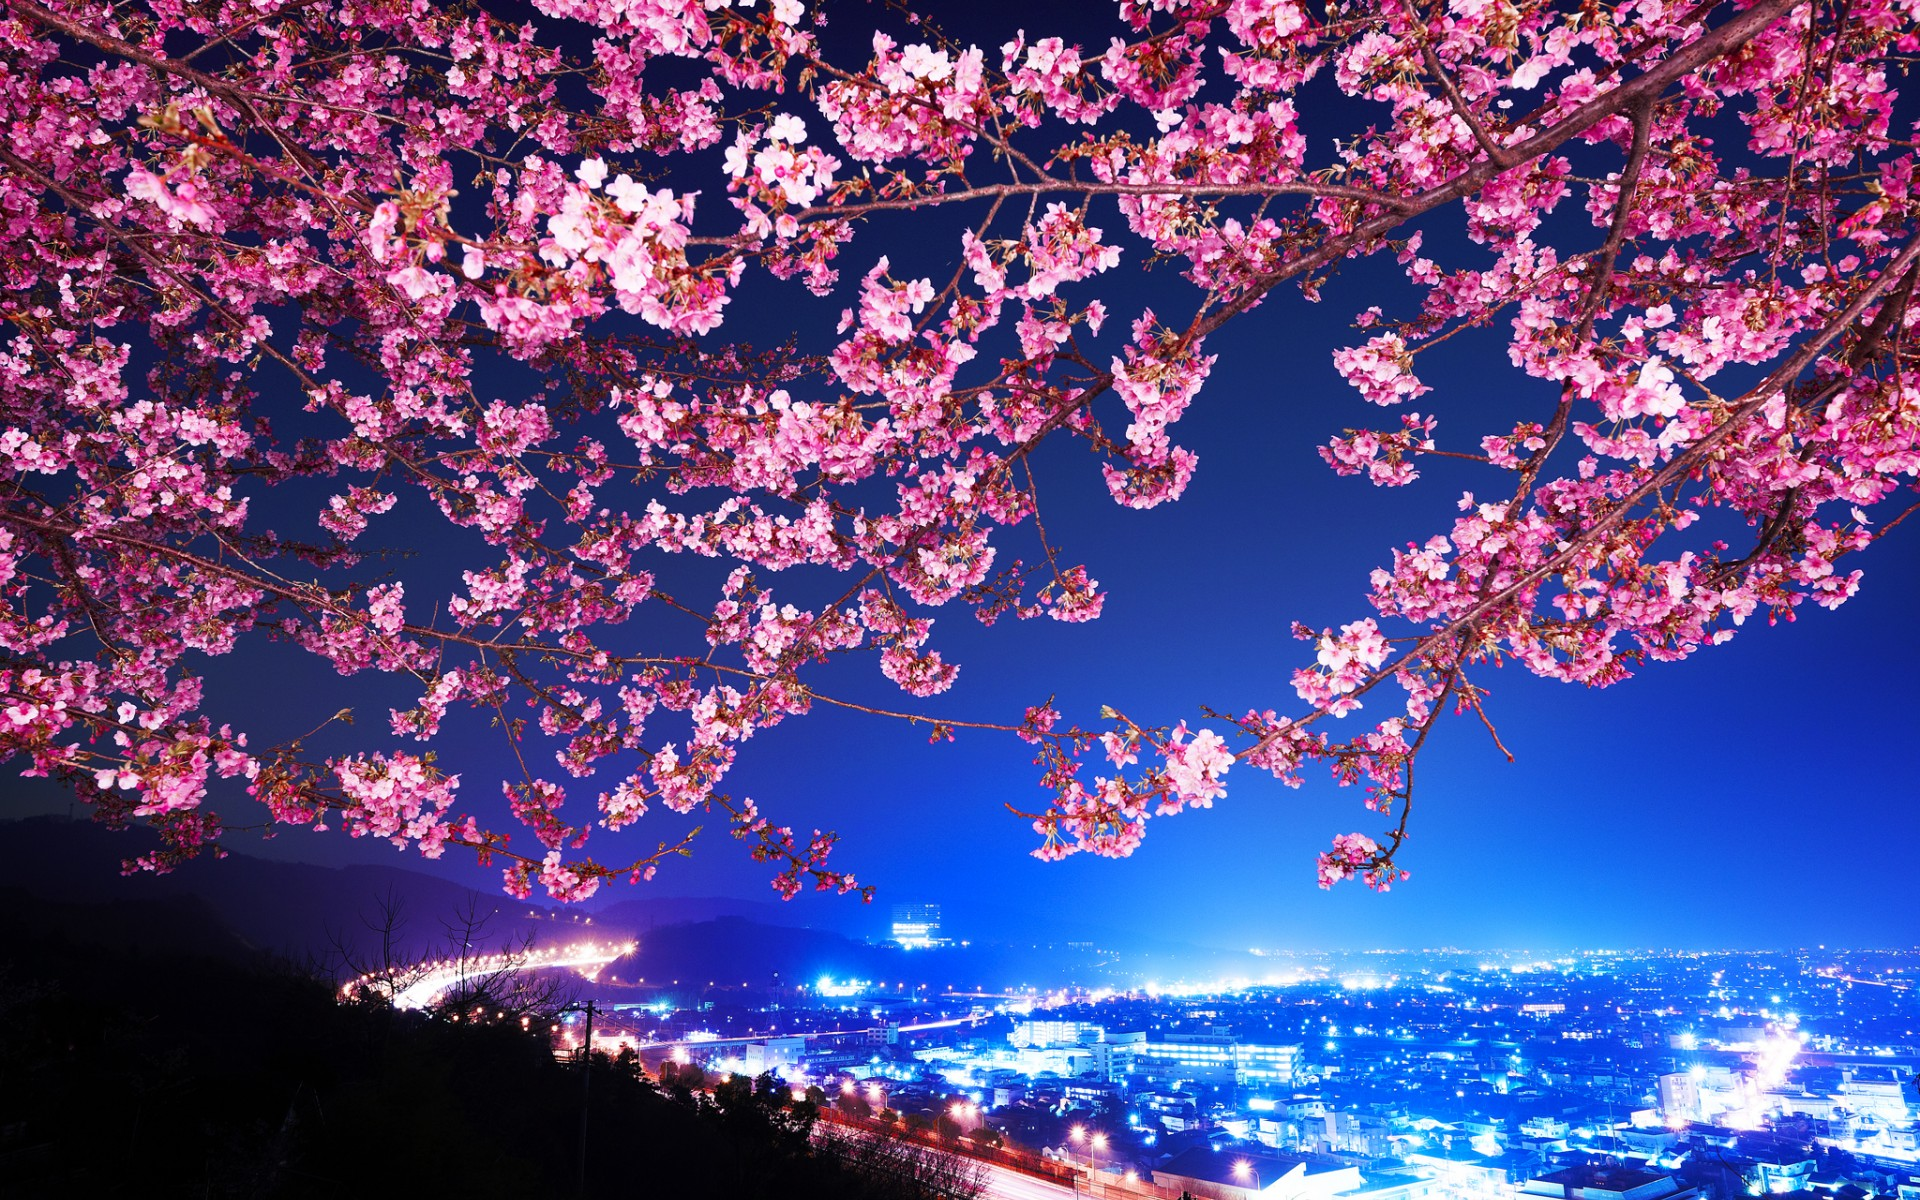 Pink Cherry Blossom Bird Stock Images RoyaltyFree Images